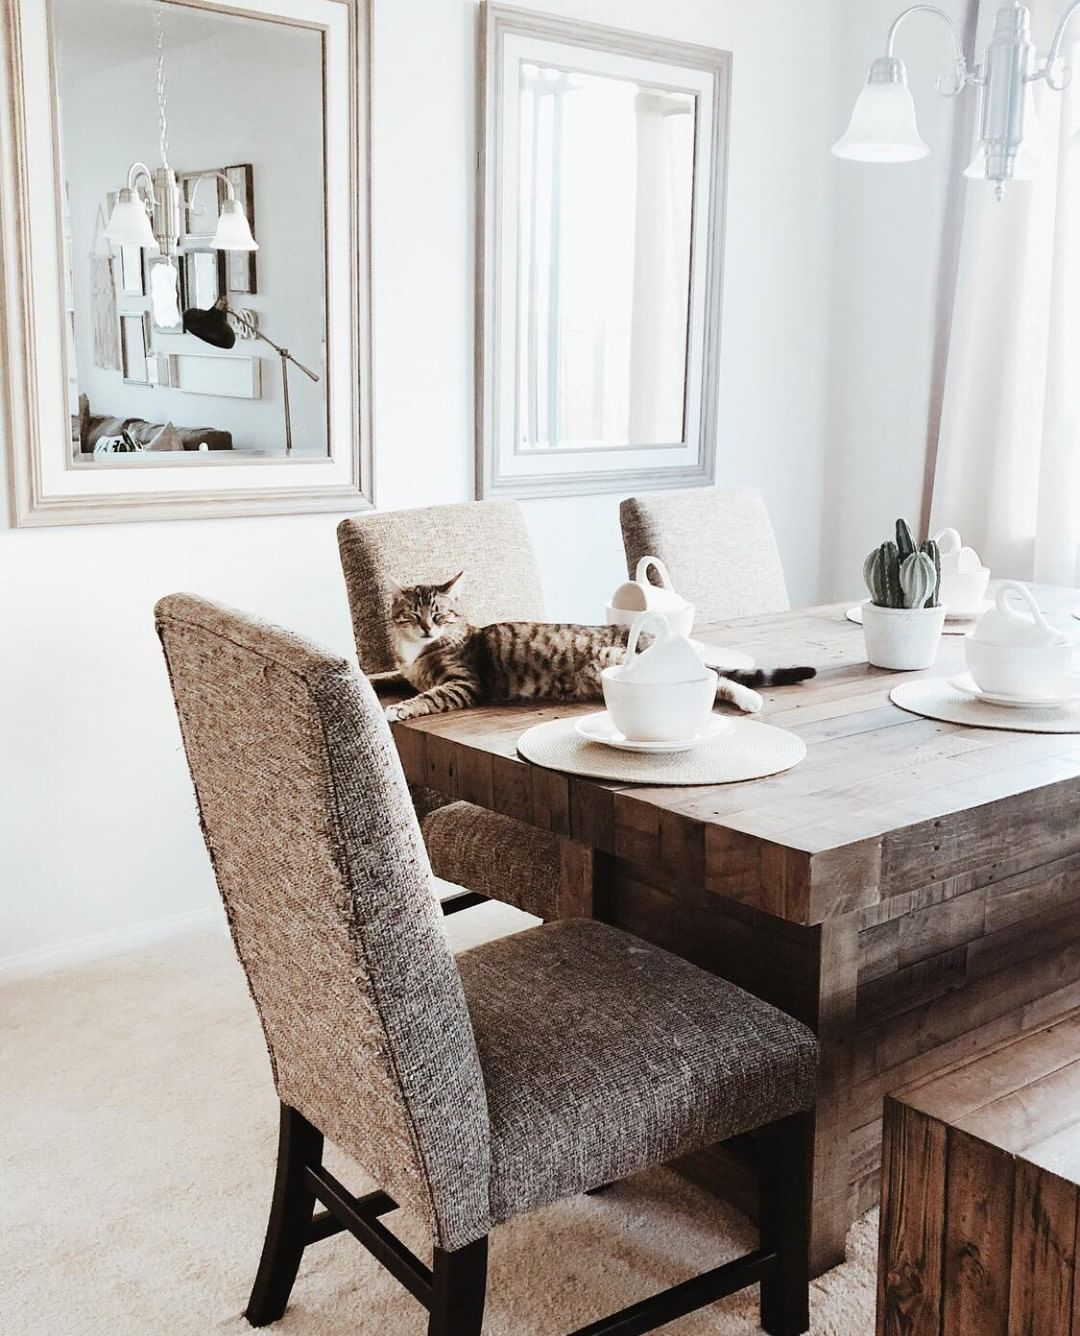 Ashley Furniture Home On Instagram We Go Together Like Our Sommerford Dining Room Table Chair Thanks For Sharing Kerncountryfarmhouse